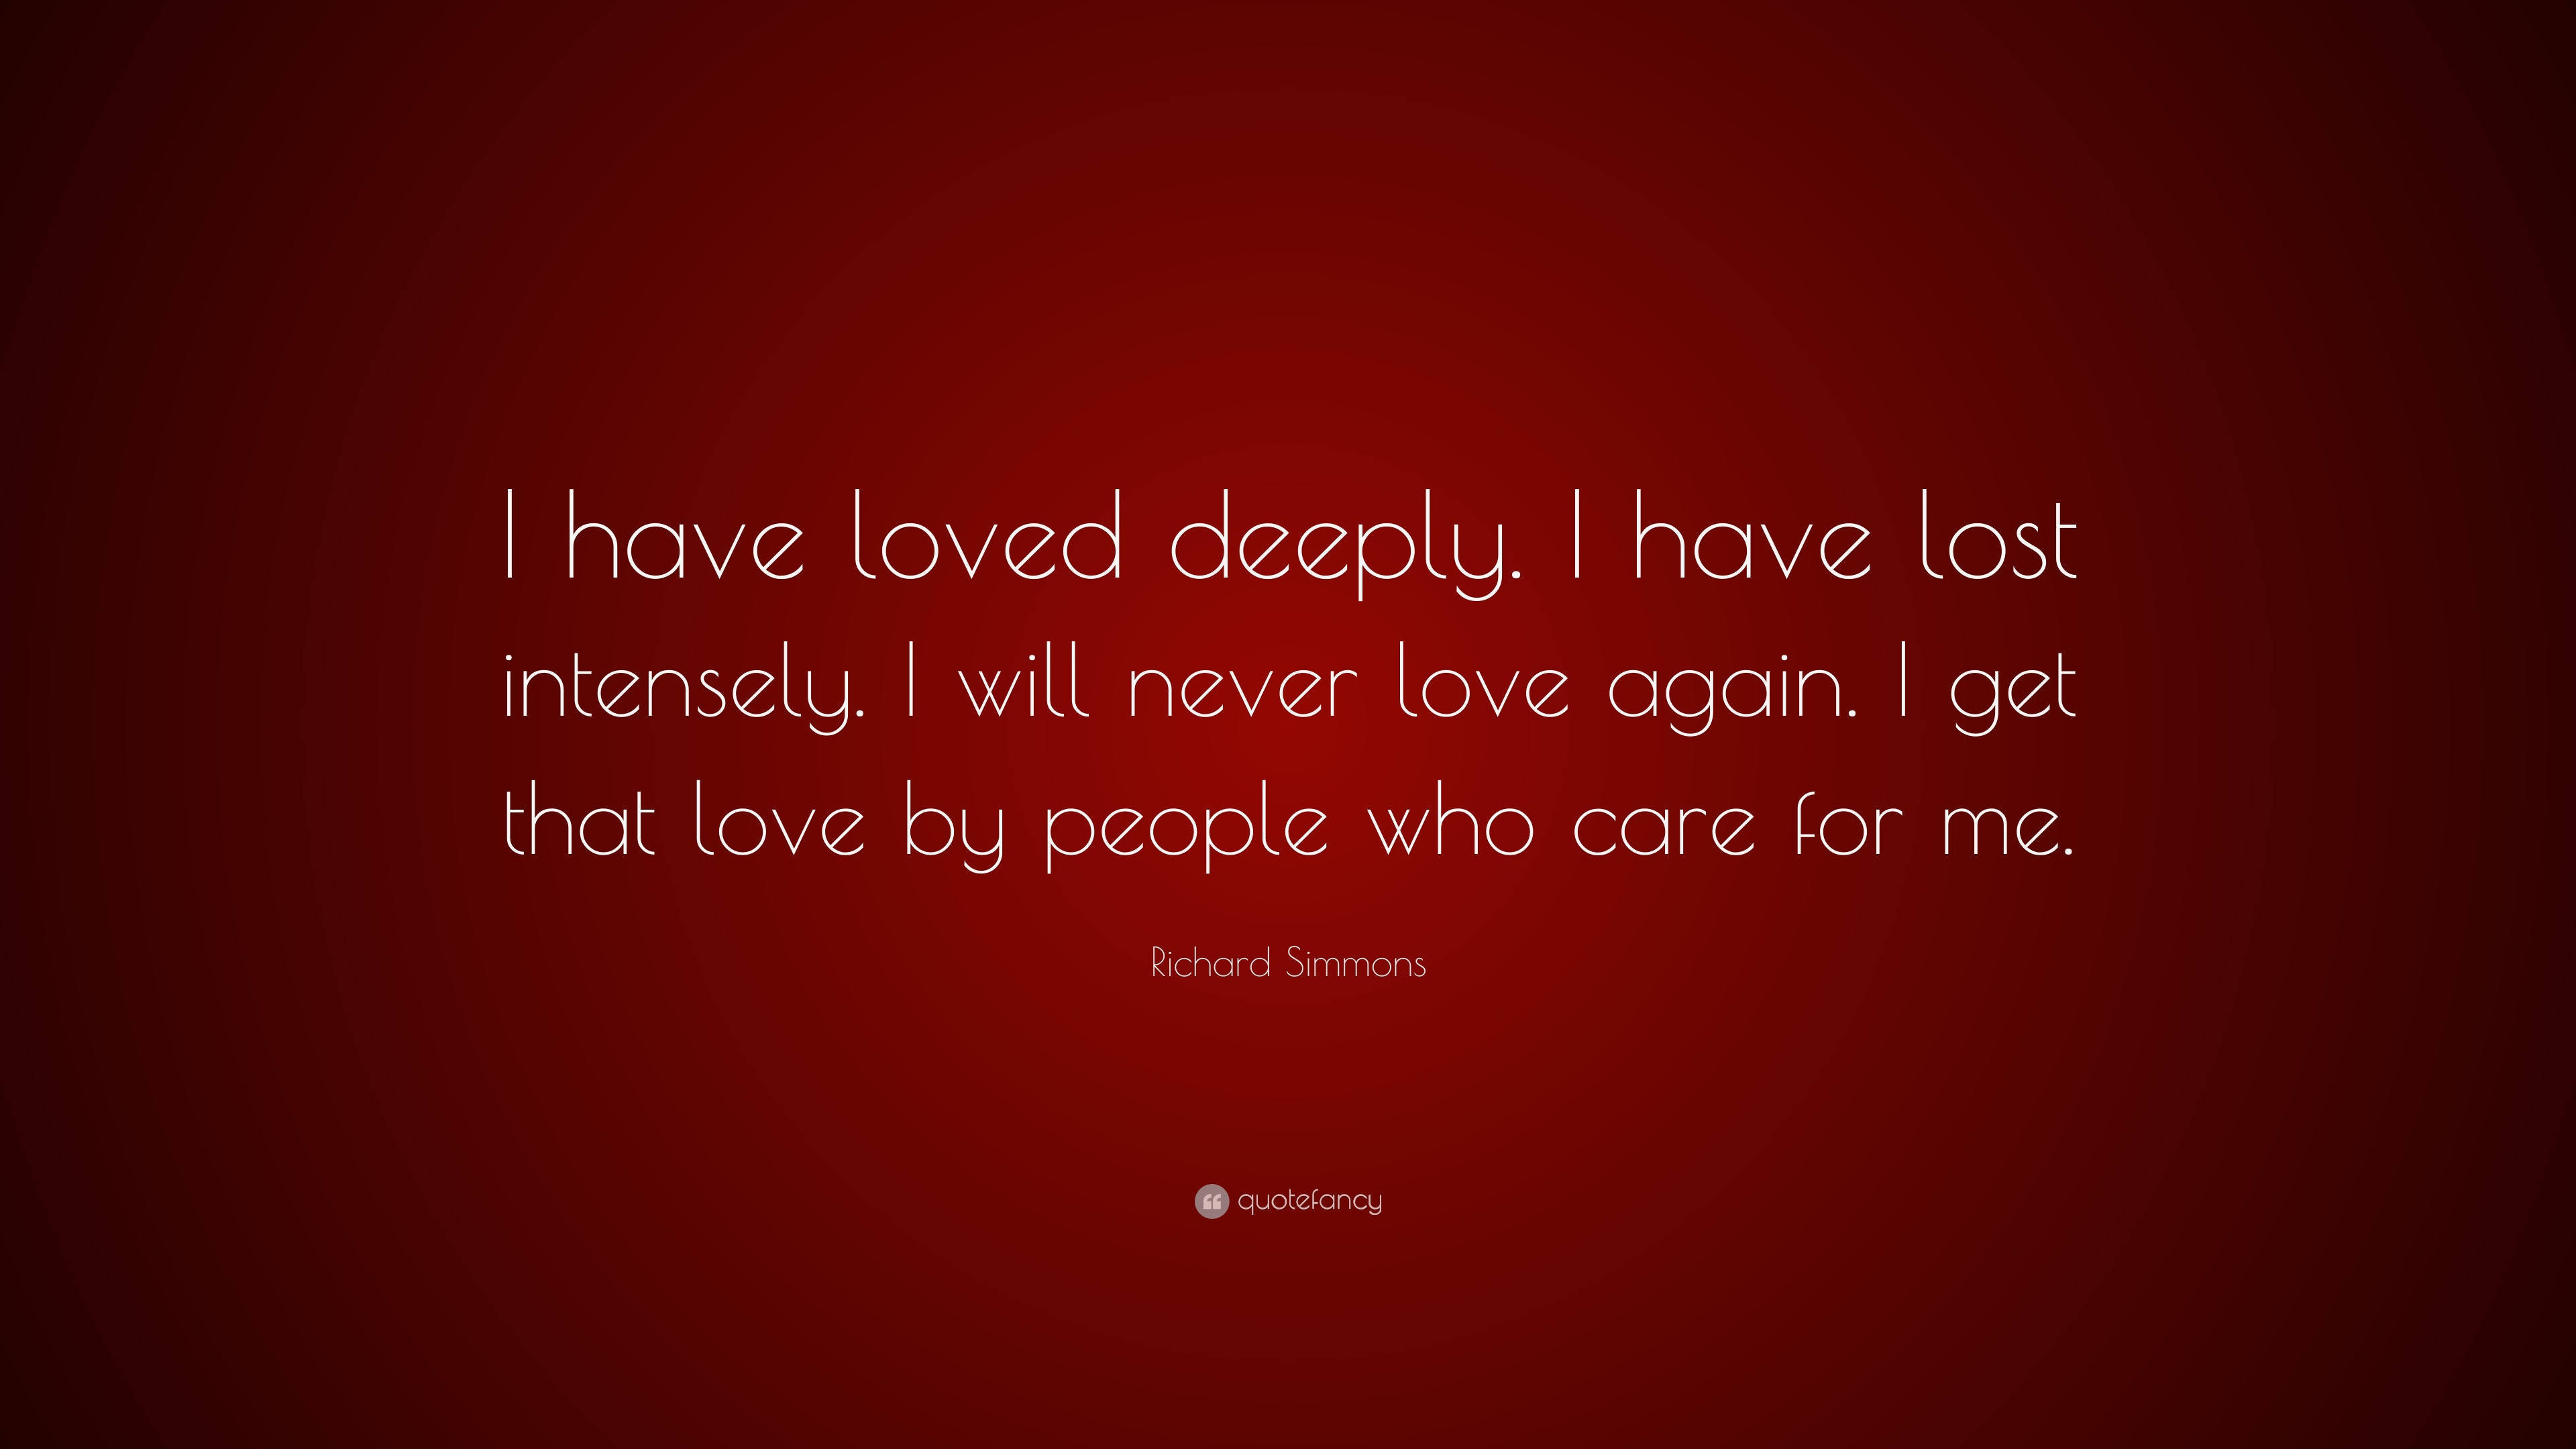 Richard Simmons Quote I Have Loved Deeply I Have Lost Intensely